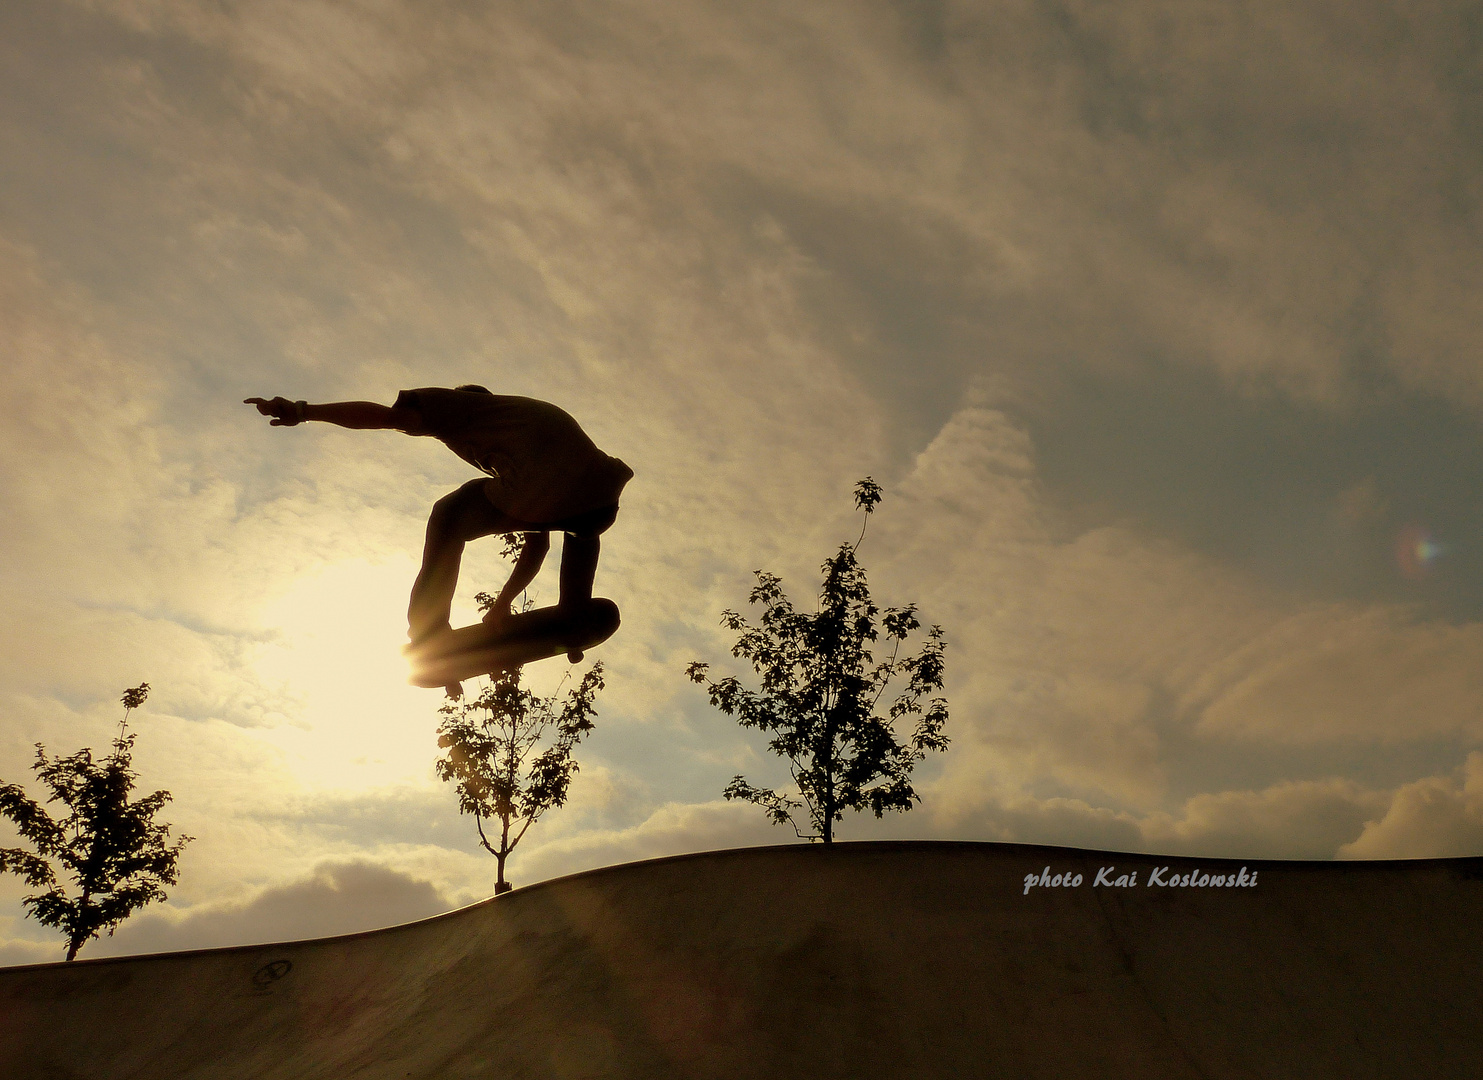 skateboarding-with the power of the sun